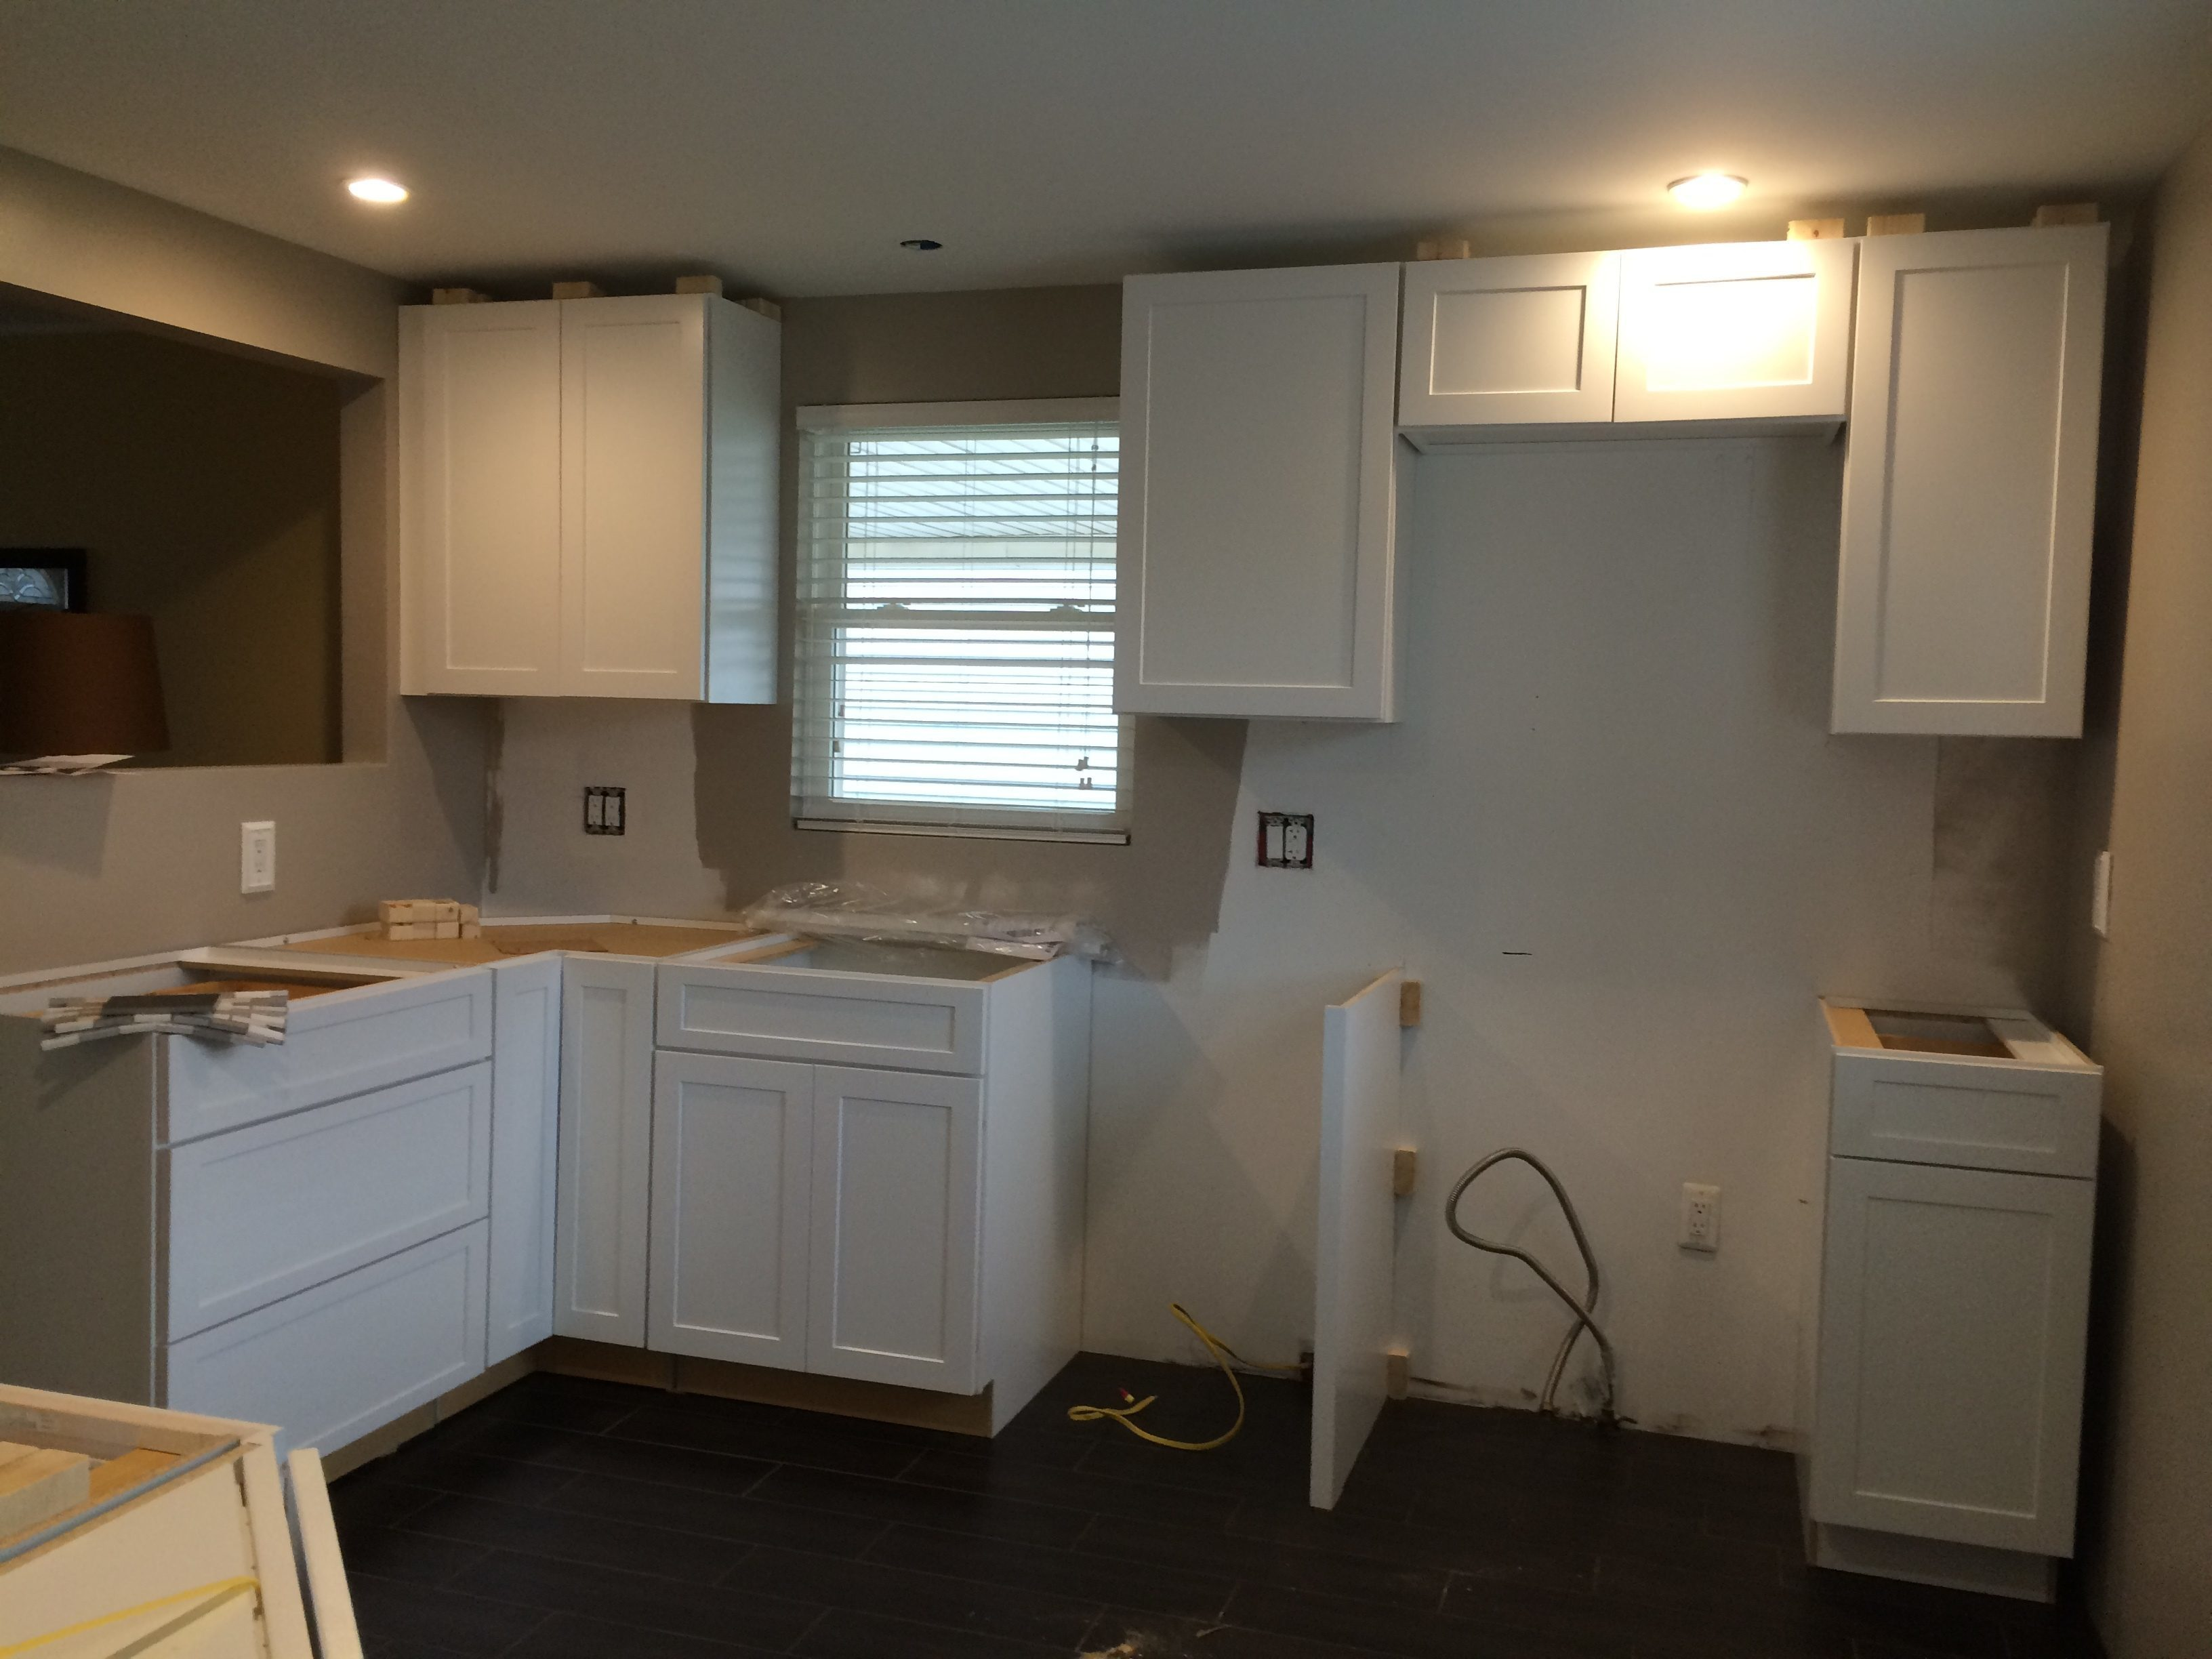 home depot marble countertop kitchen countertops home depot Formica Laminate Countertops Home Depot Img